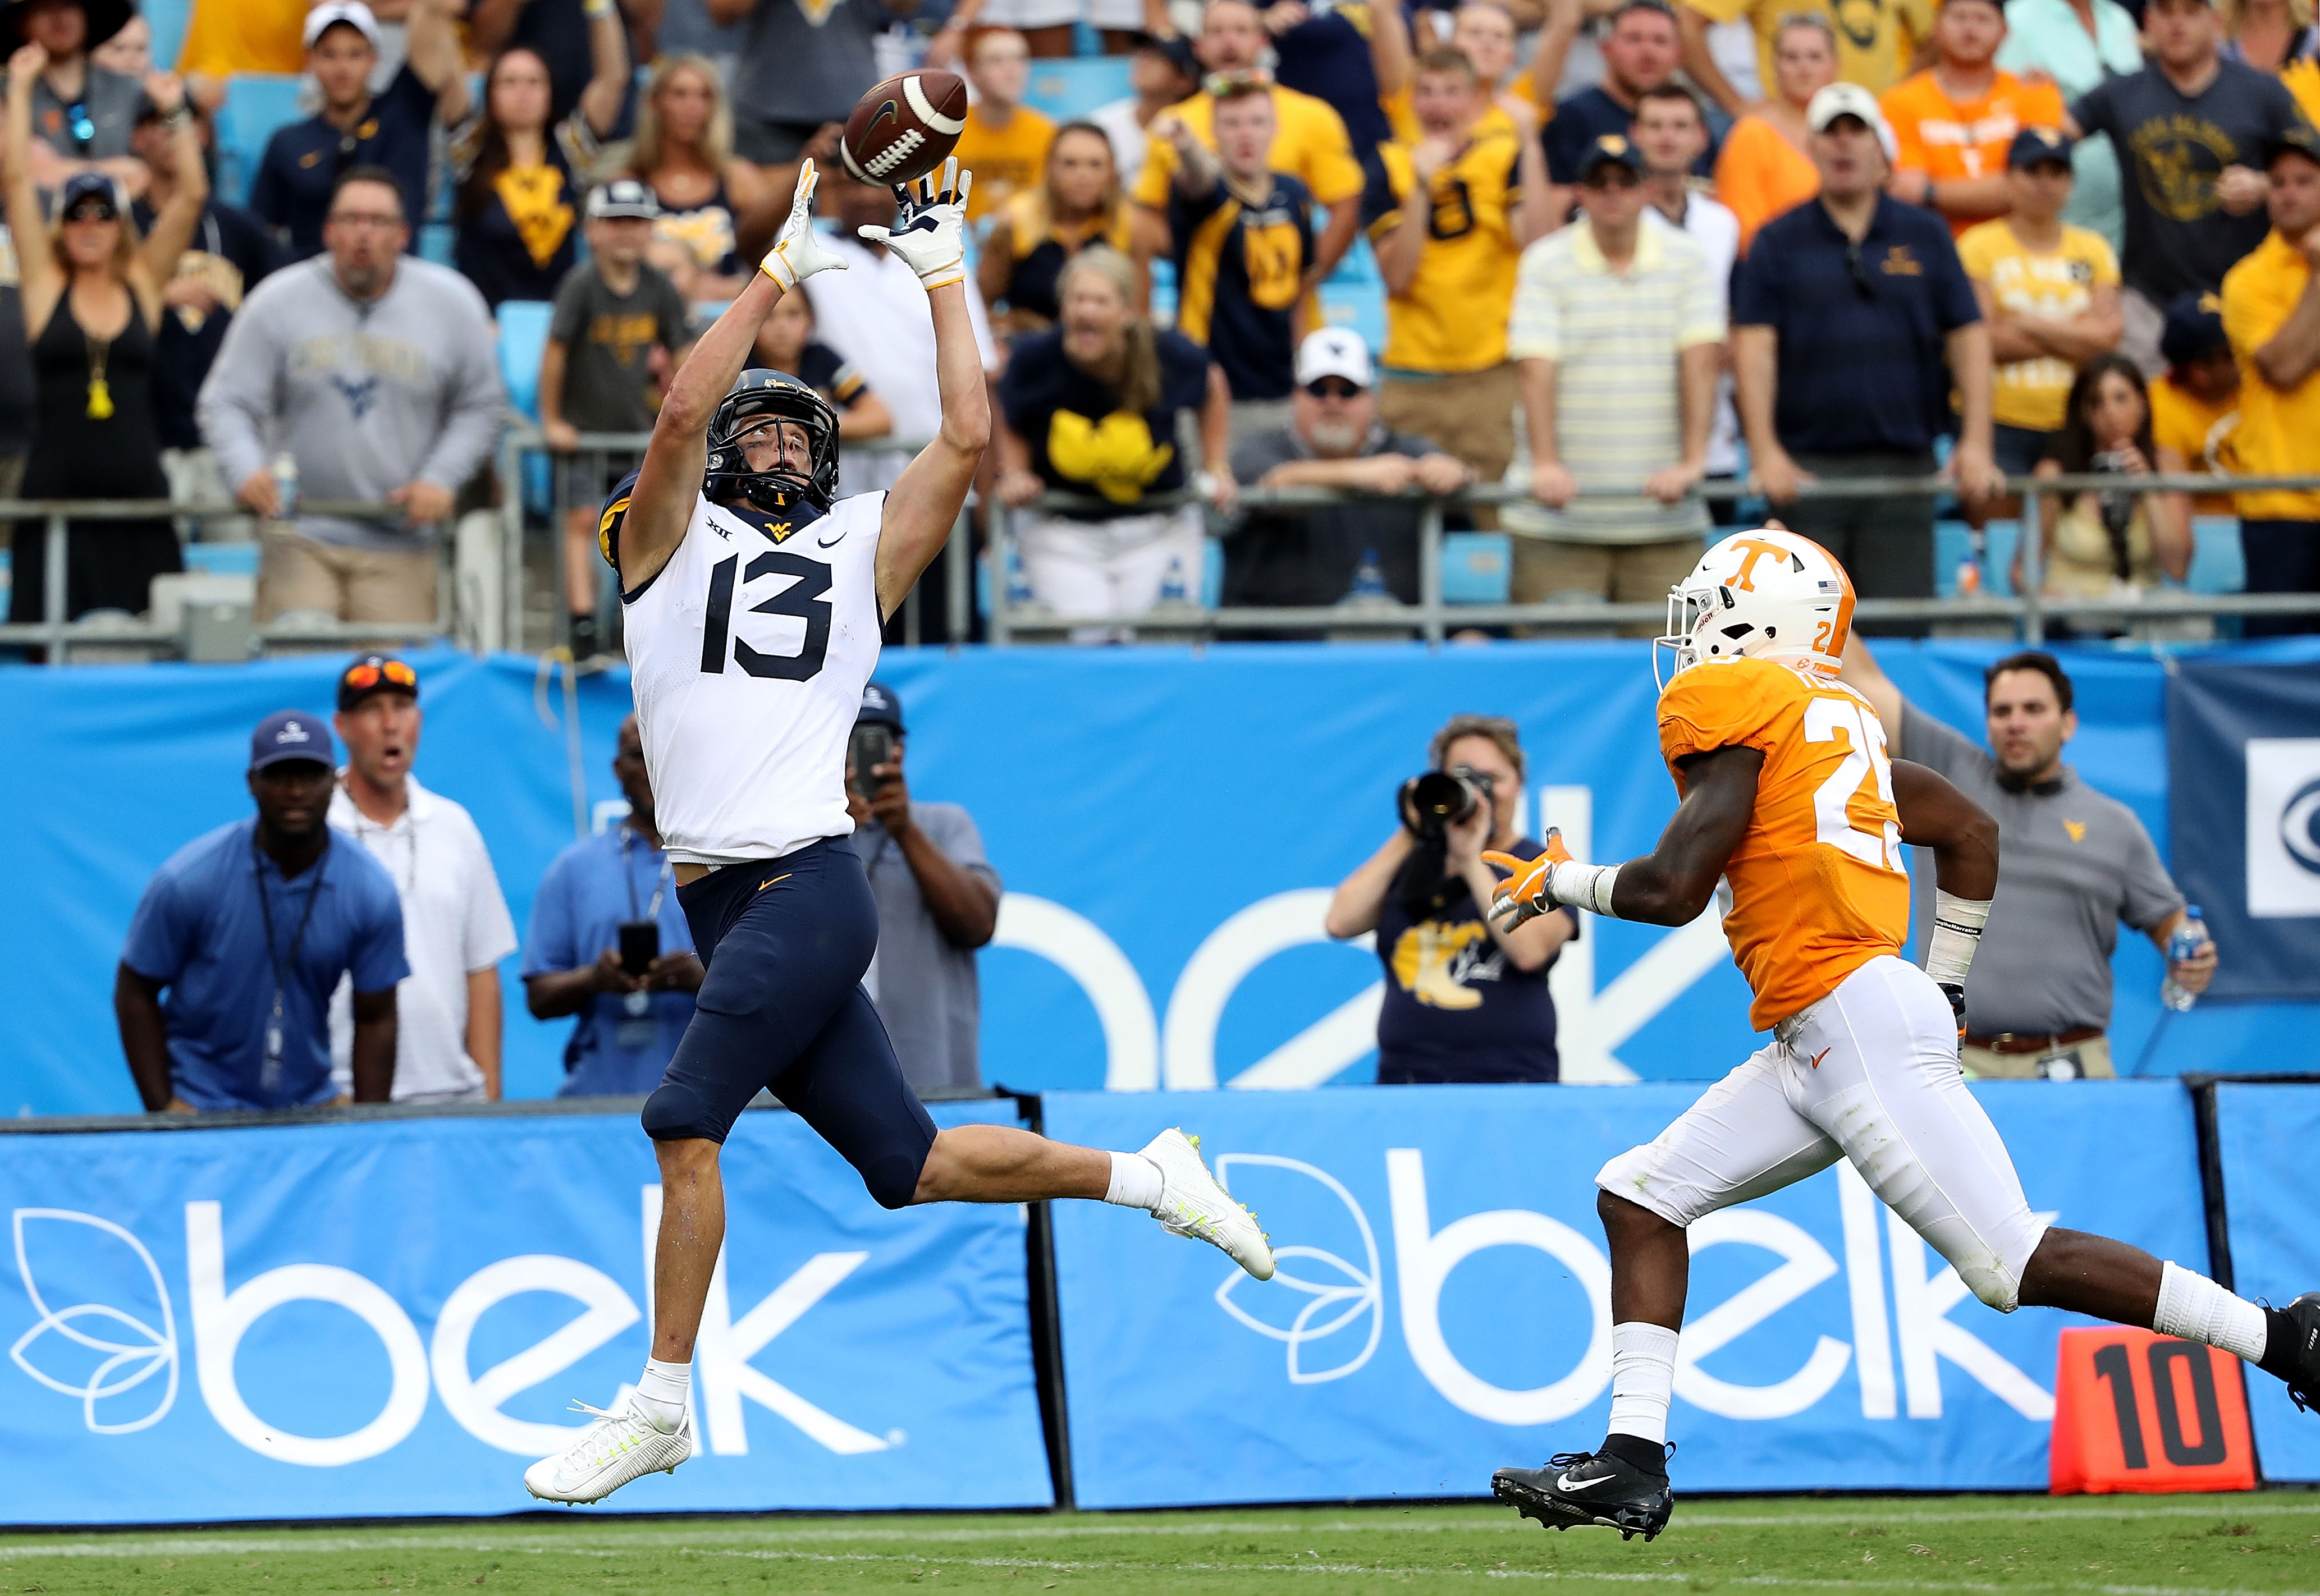 Vols Football: Tennessee vs  West Virginia Film Study Review - Rocky